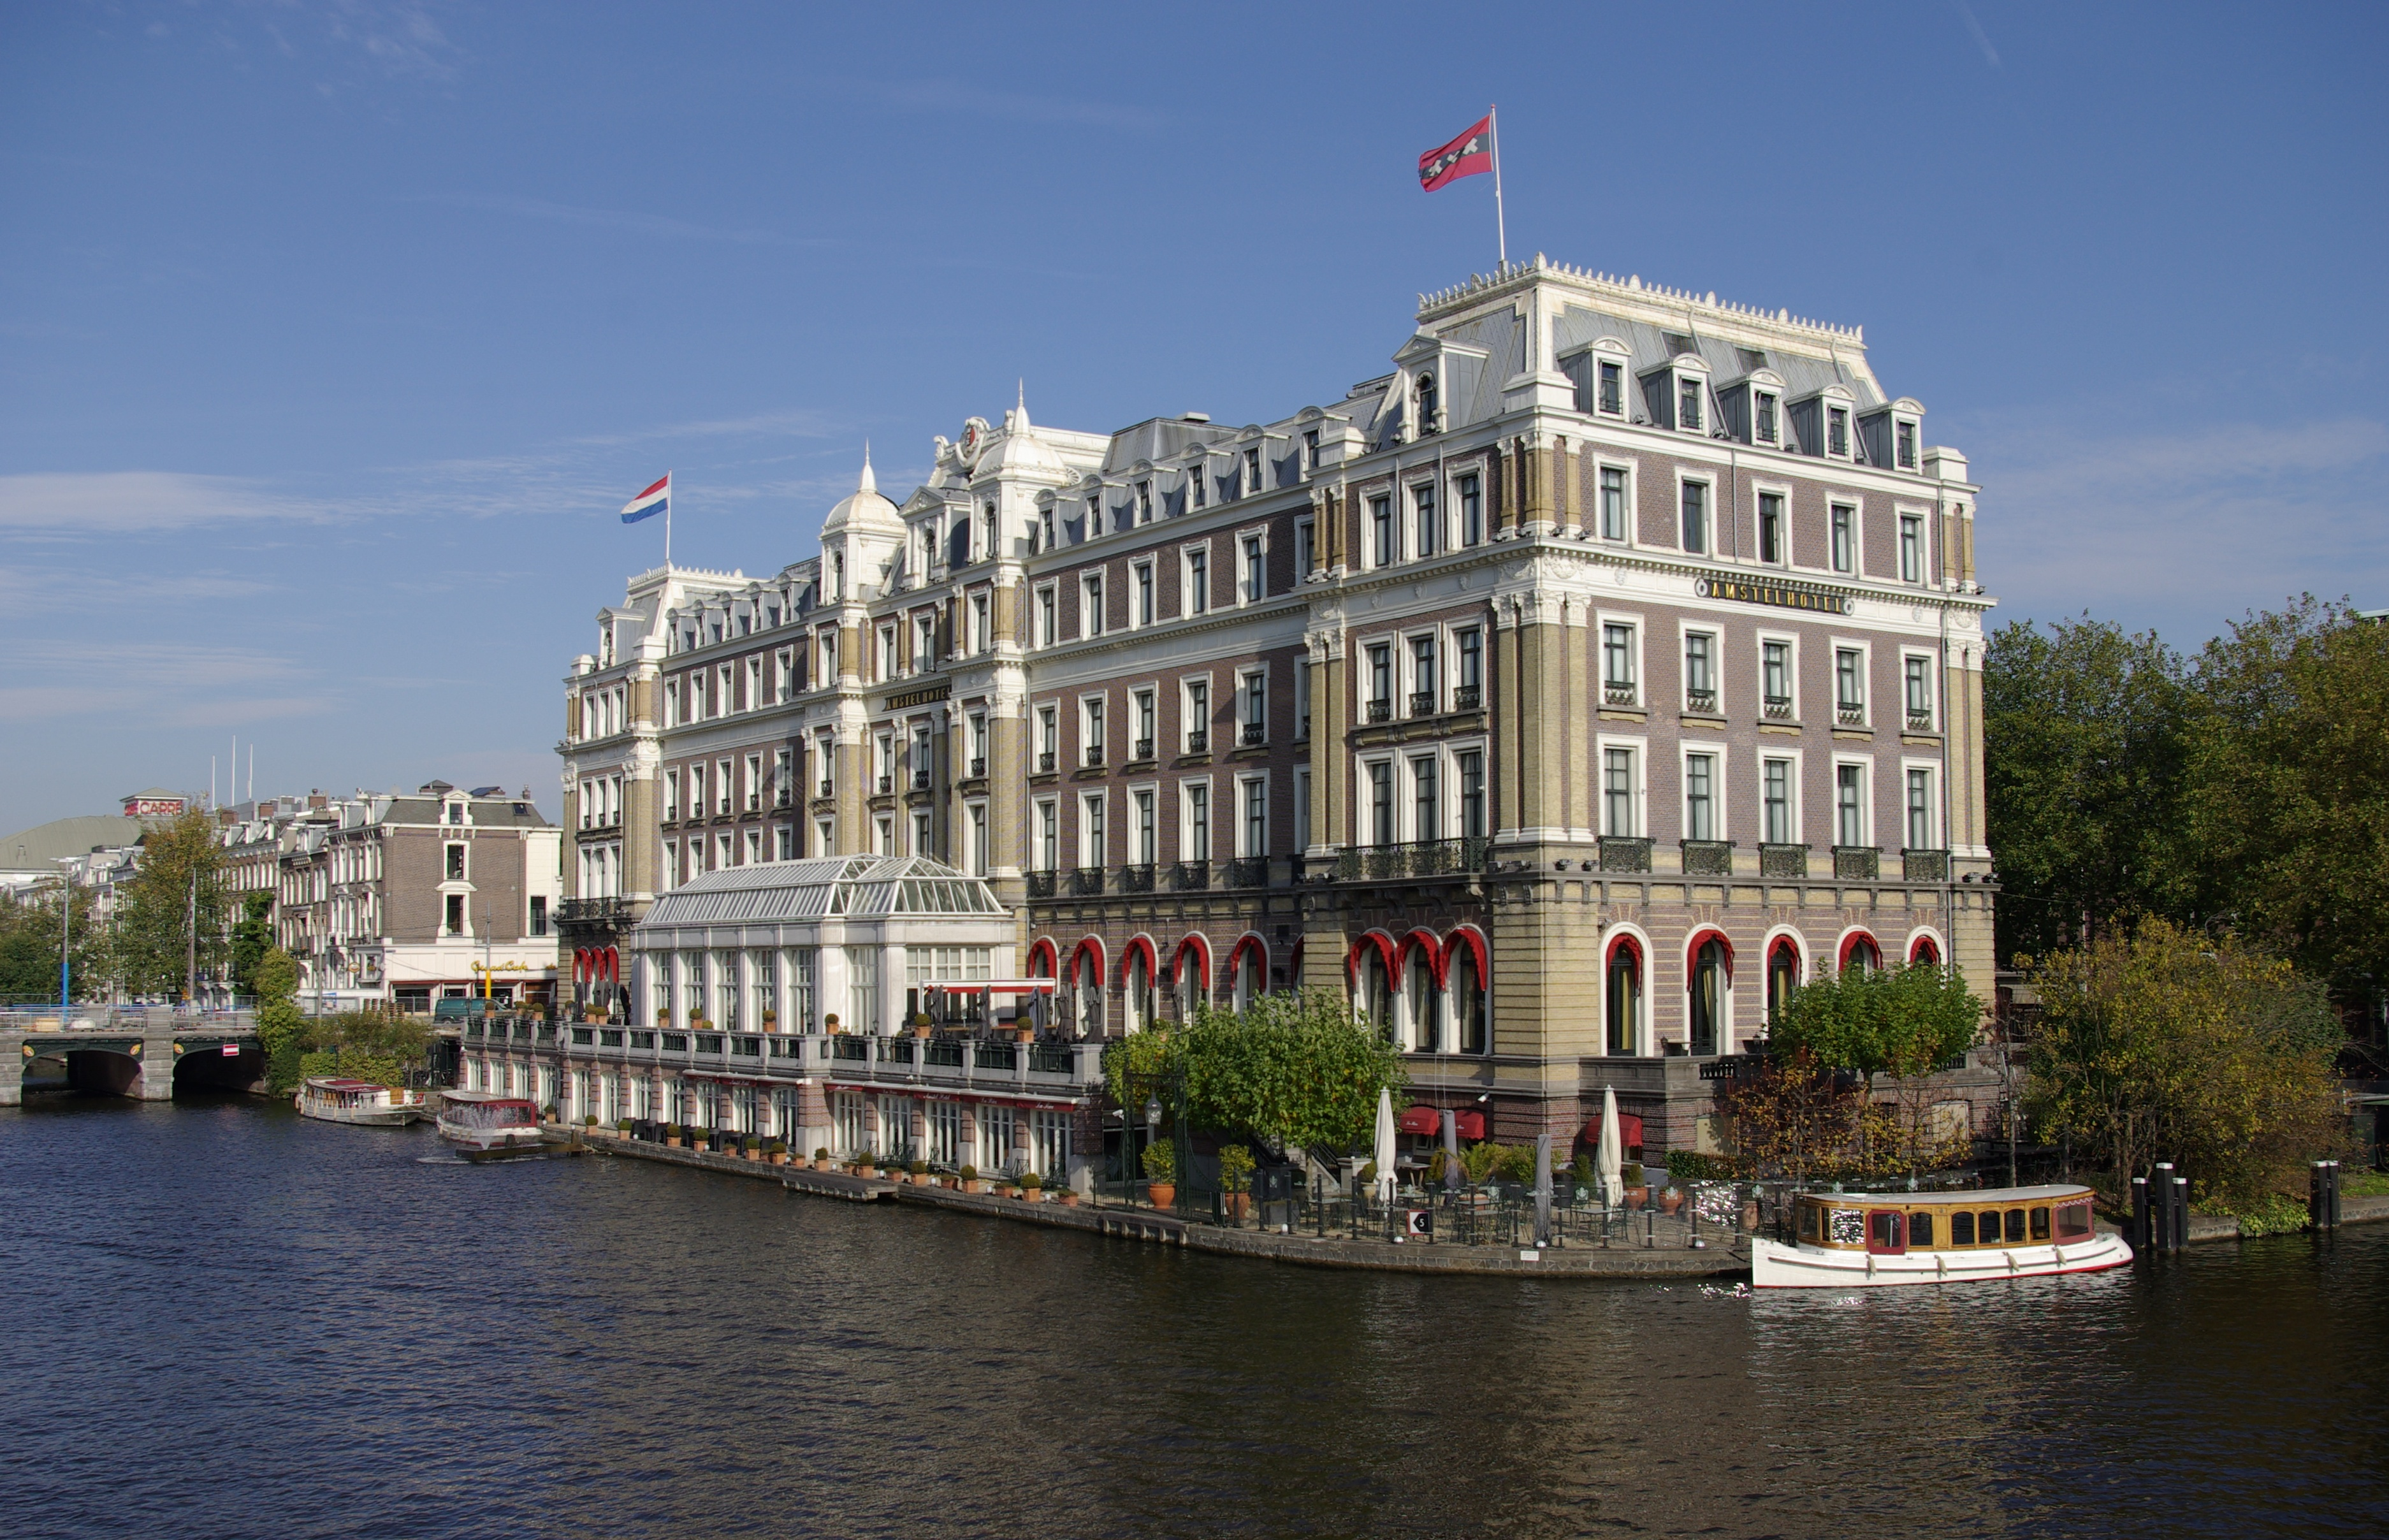 Amstel Hotel - Hotels Amsterdam - Information, reservations and ...